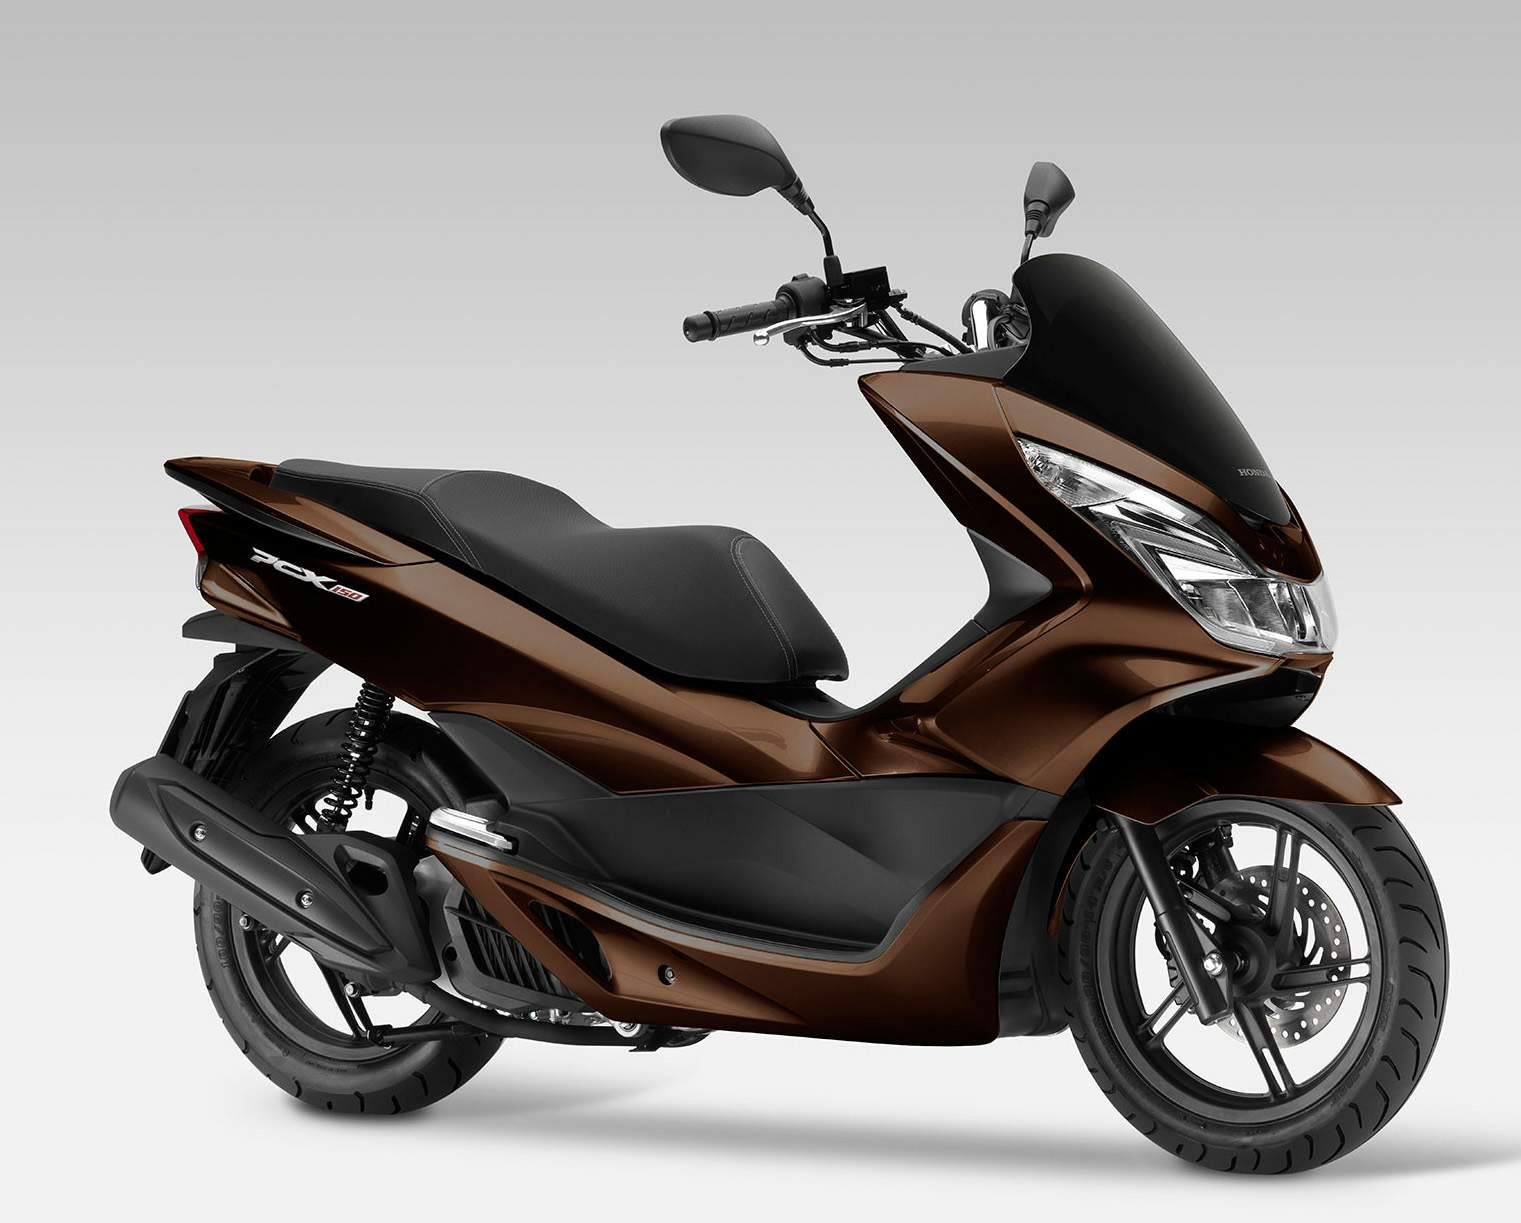 Мотоцикл Honda PCX 150 Scooter 2015